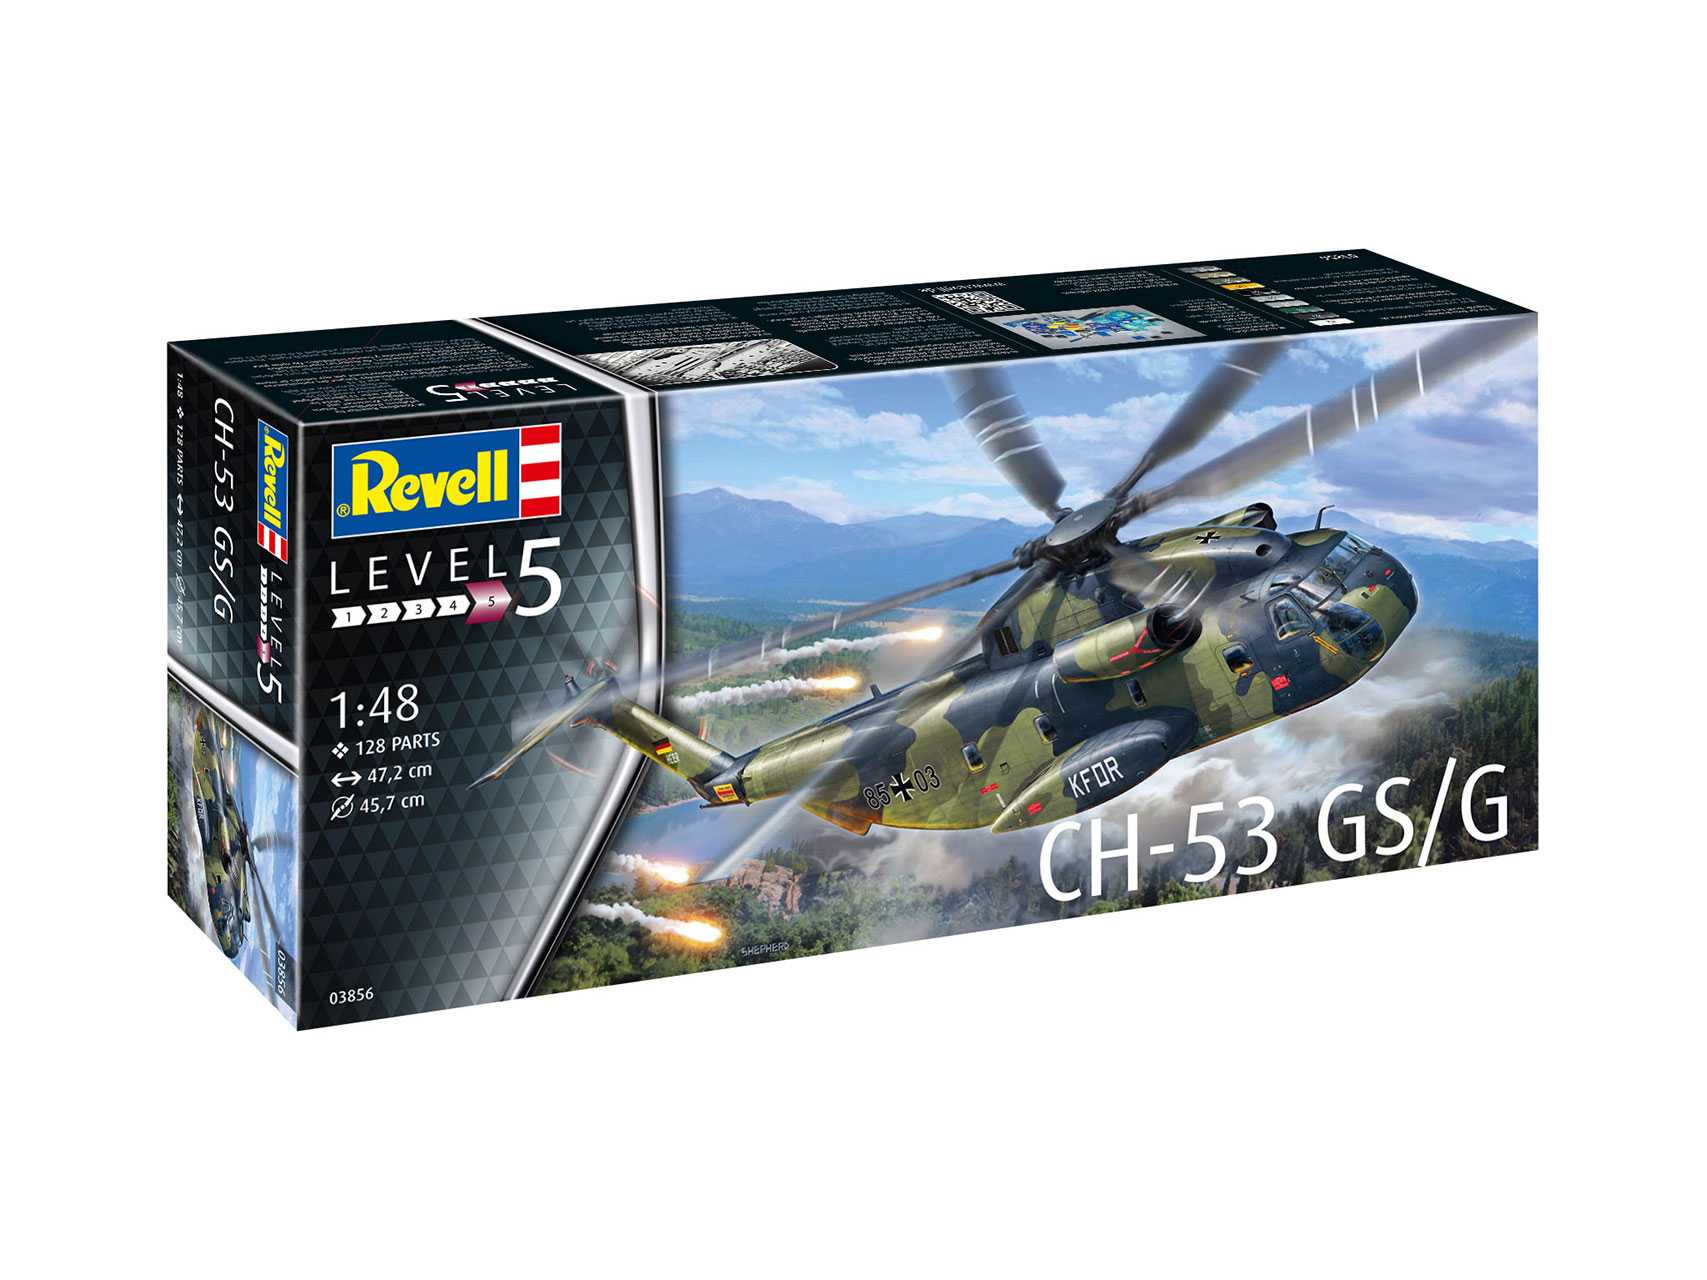 1:48 Sikorsky CH-53 GS/G